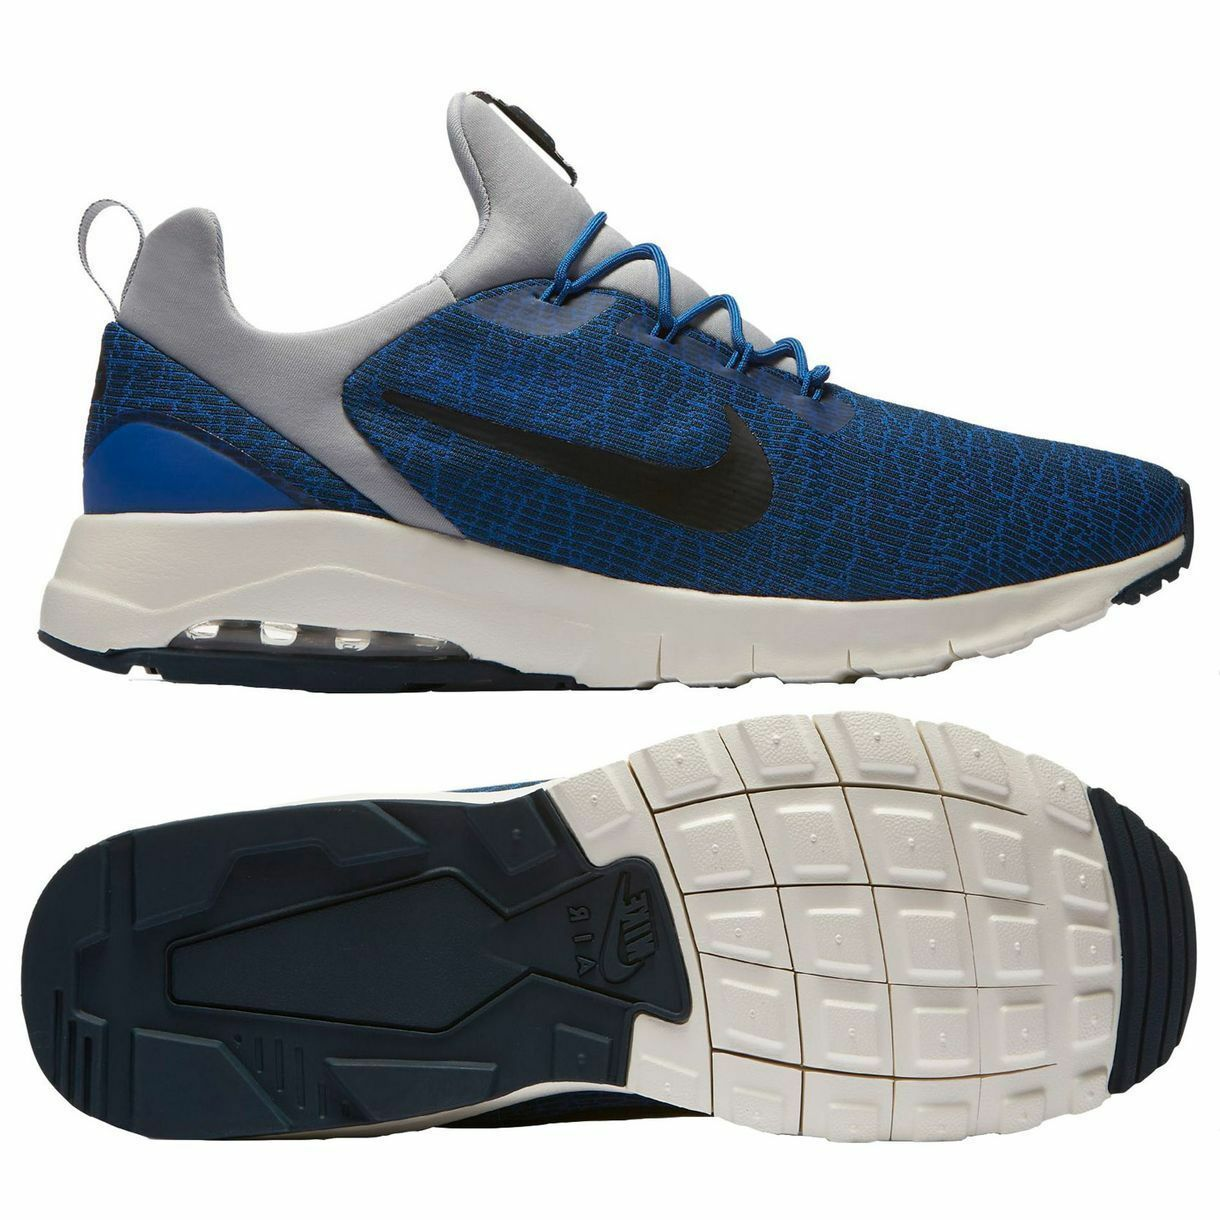 NIB Men's Nike Air Max Motion Racer Casual Shoes, 916771 400 Blue/Black Sz 11 Comfortable and good-looking